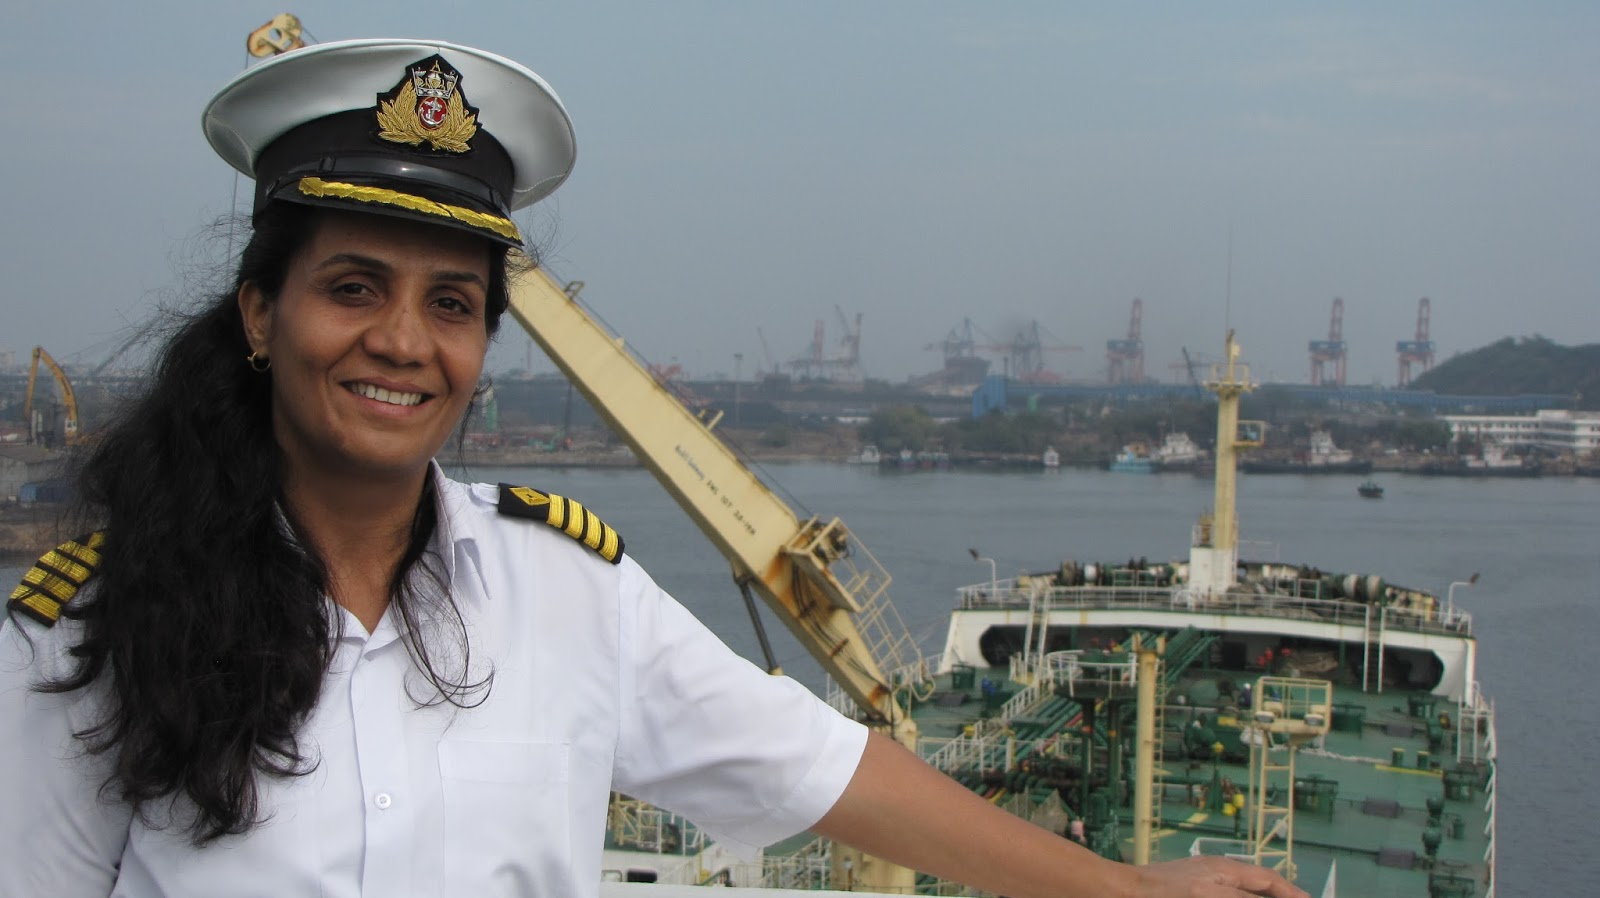 Captain Radhika Menon to receive 2016 IMO Award for Exceptional Bravery at Sea